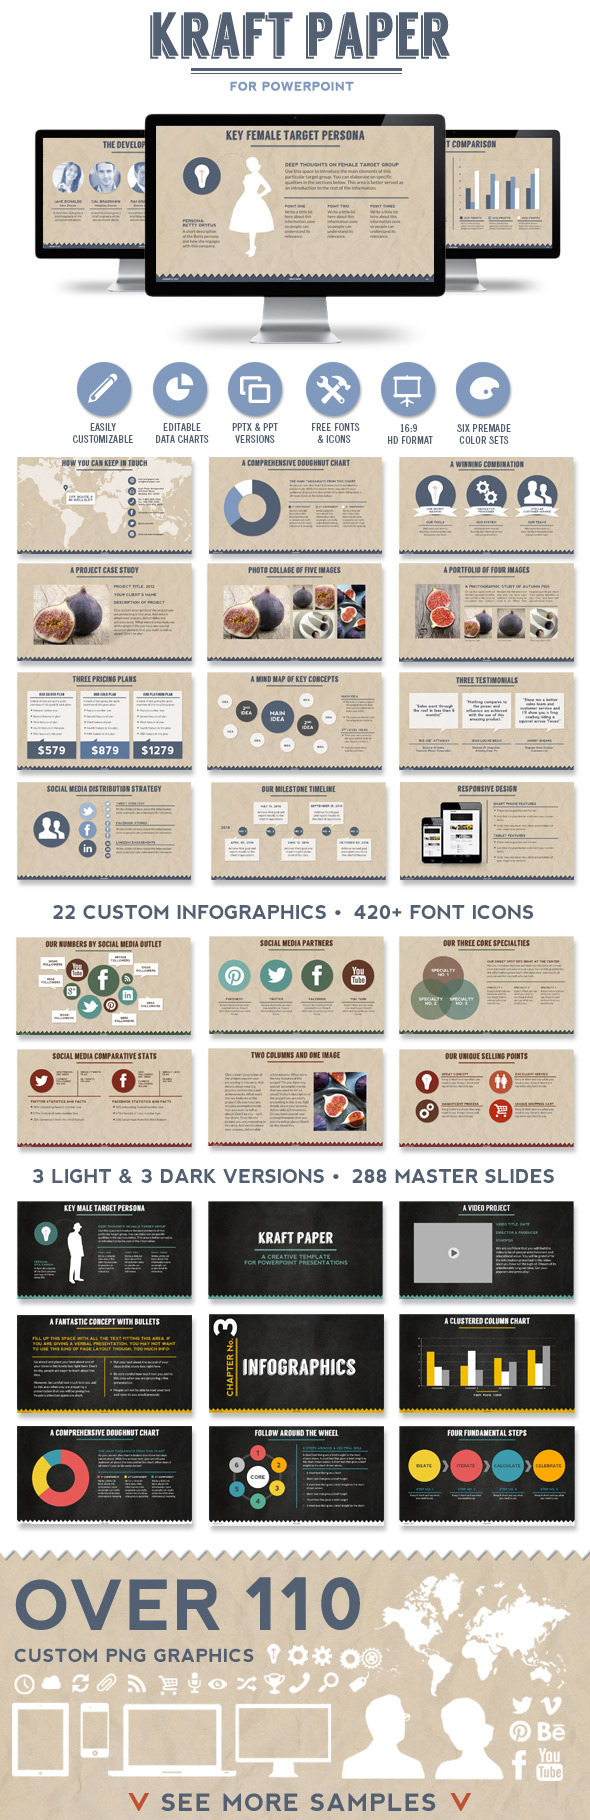 Kraft Paper Powerpoint Presentation Template - Creative PowerPoint Templates